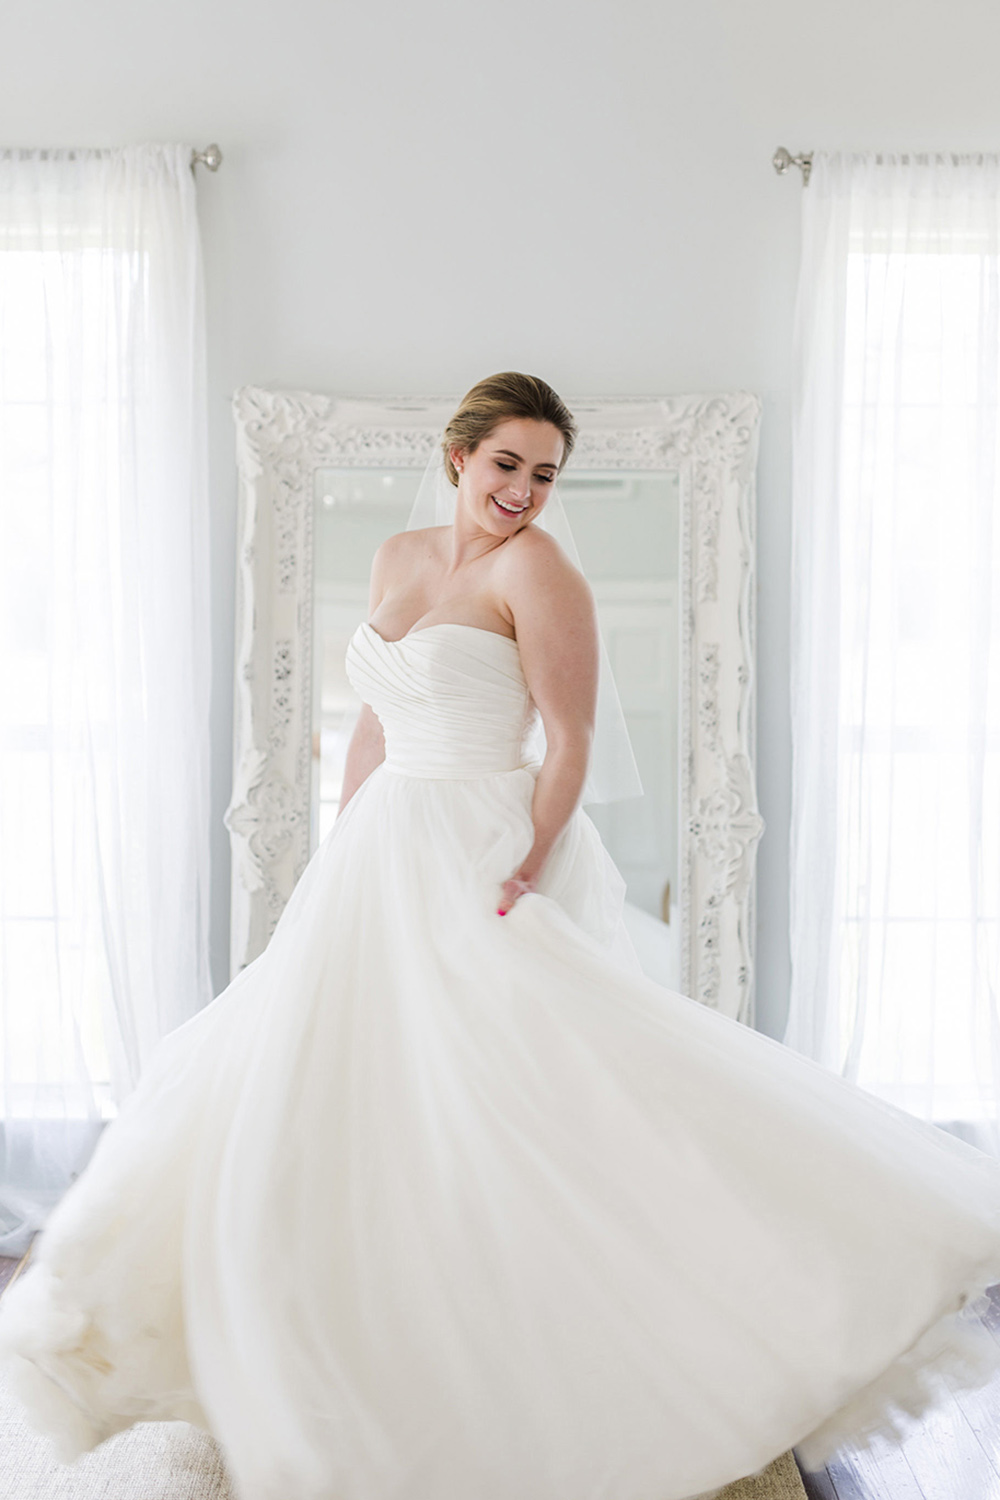 Charlotte two-tiered fingertip veil with blusher | Petal & Veil